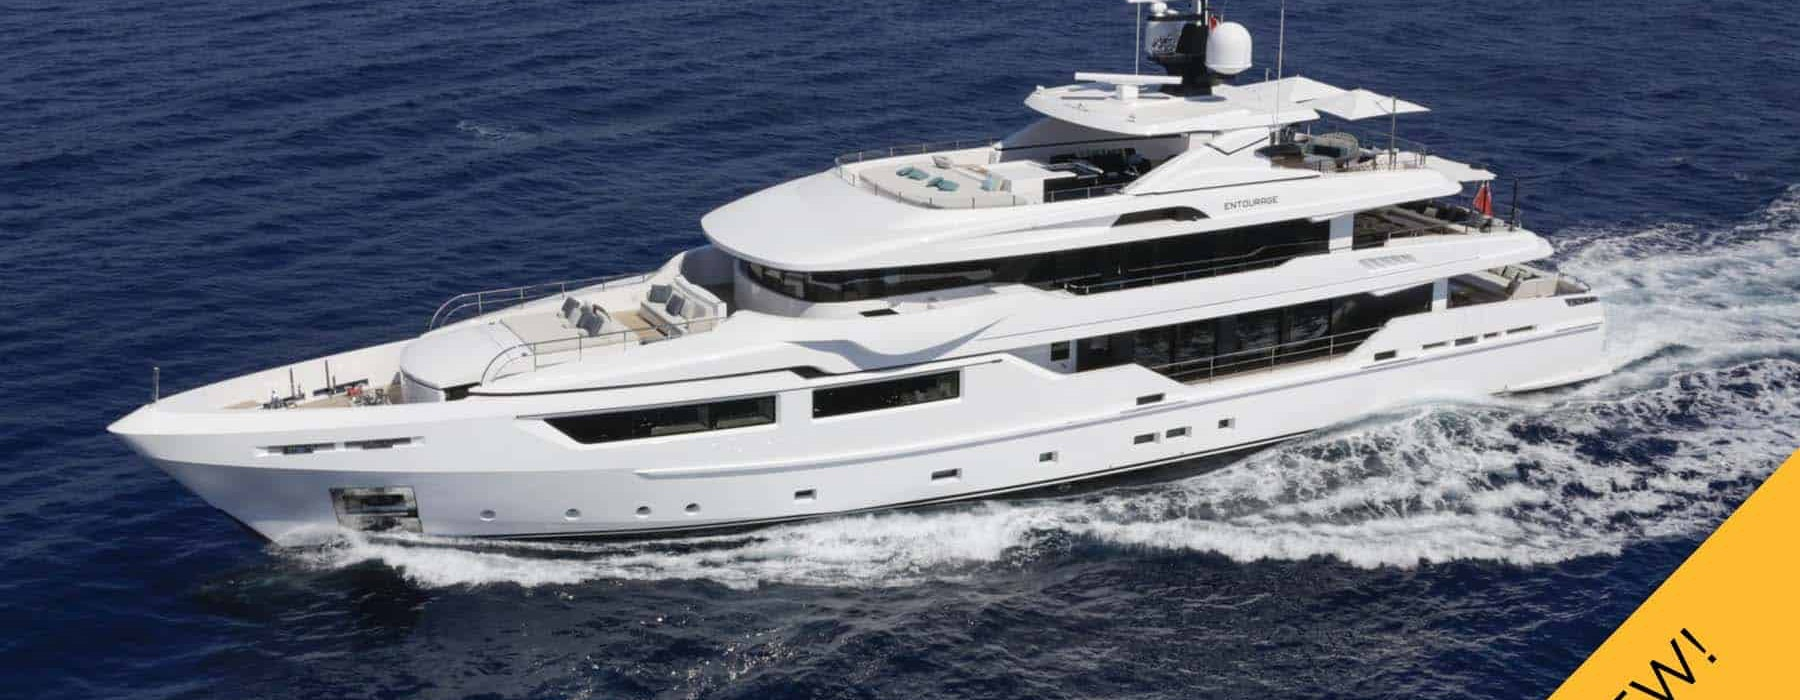 ENTOURAGE Admiral Luxury yacht for sale NEW CA